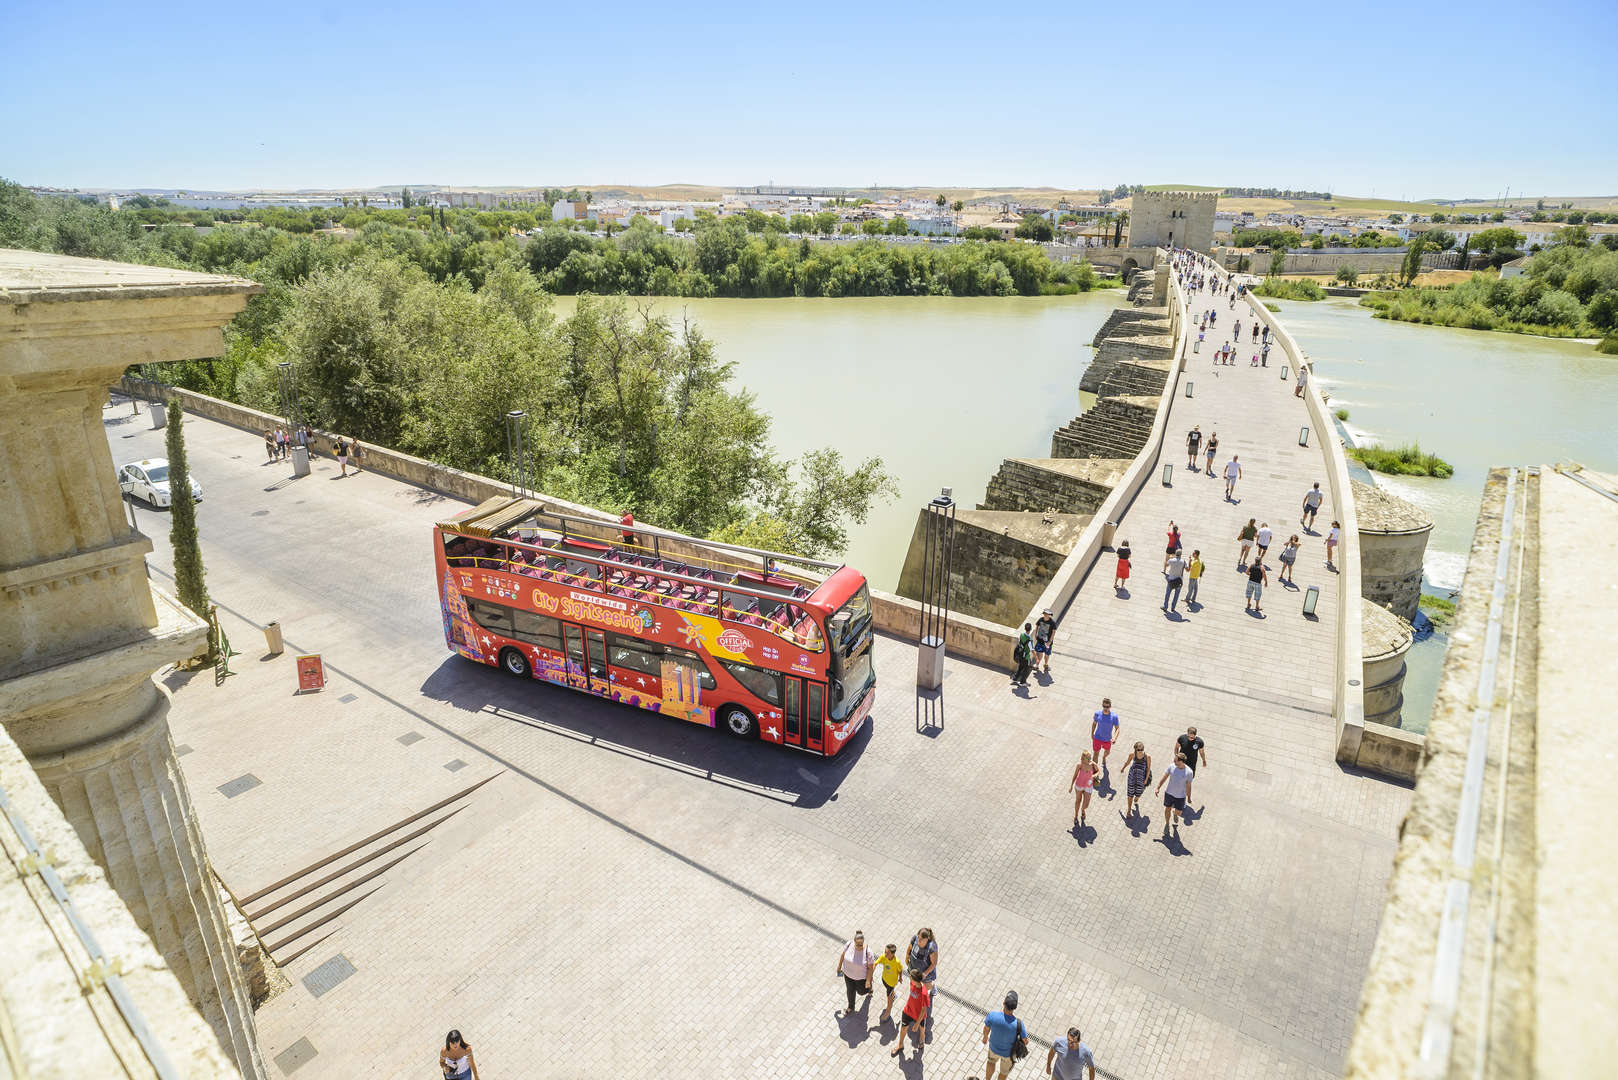 CÓRDOBA EXPERIENCE (48H BUS TURÍSTICO + 2 WALKING TOURS + MINI BUS TRANSFER MEDINA AZAHARA)<br /><strong>Ticket 48h  <strong class='extra_info_articulo'>- desde 25.00 €  </strong></strong>